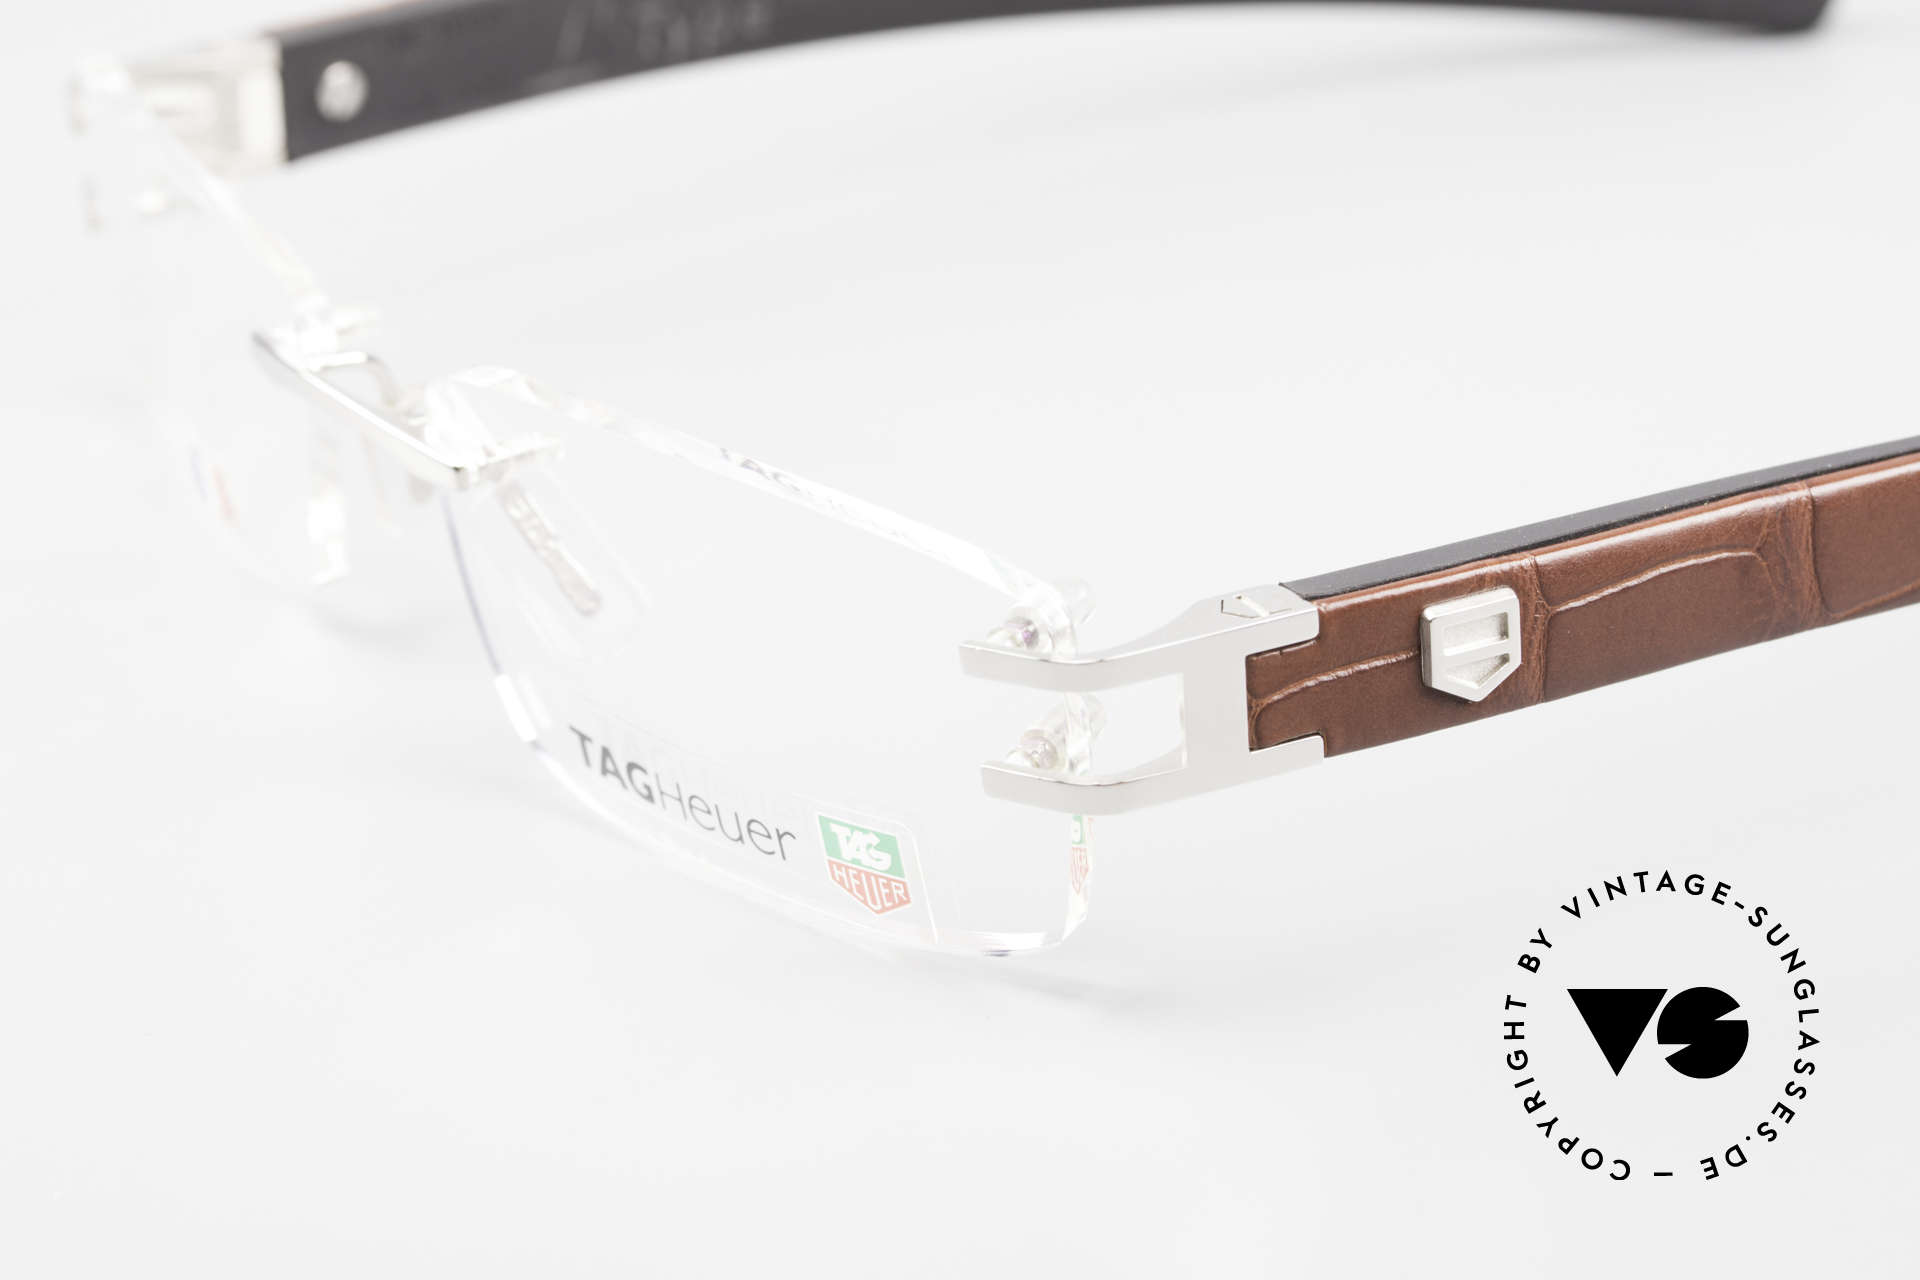 Tag Heuer L-Type 0113 Alligator Leather Rimless Frame, unworn rarity with original case & cloth by Tag Heuer, Made for Men